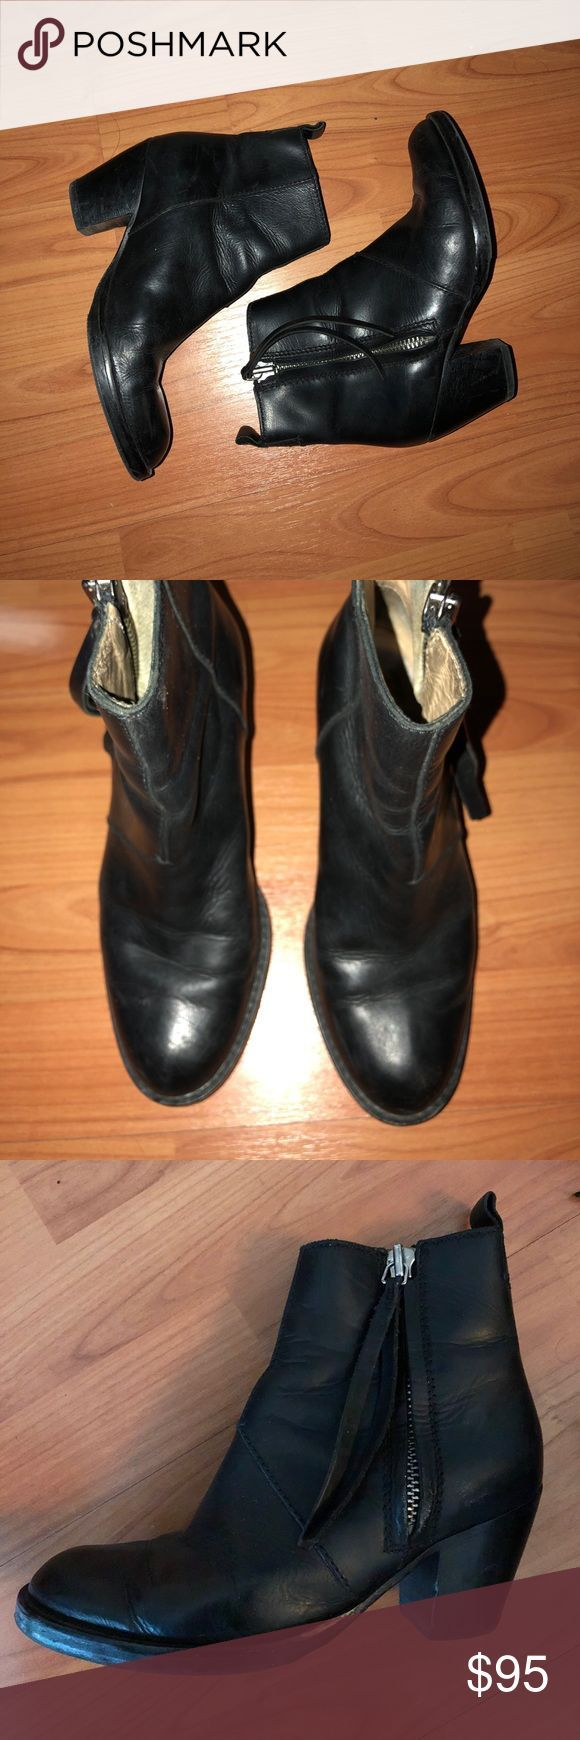 Acne Pistol Boots Black size 36 Classic Acne Pistol Boots in size 36 or US 6